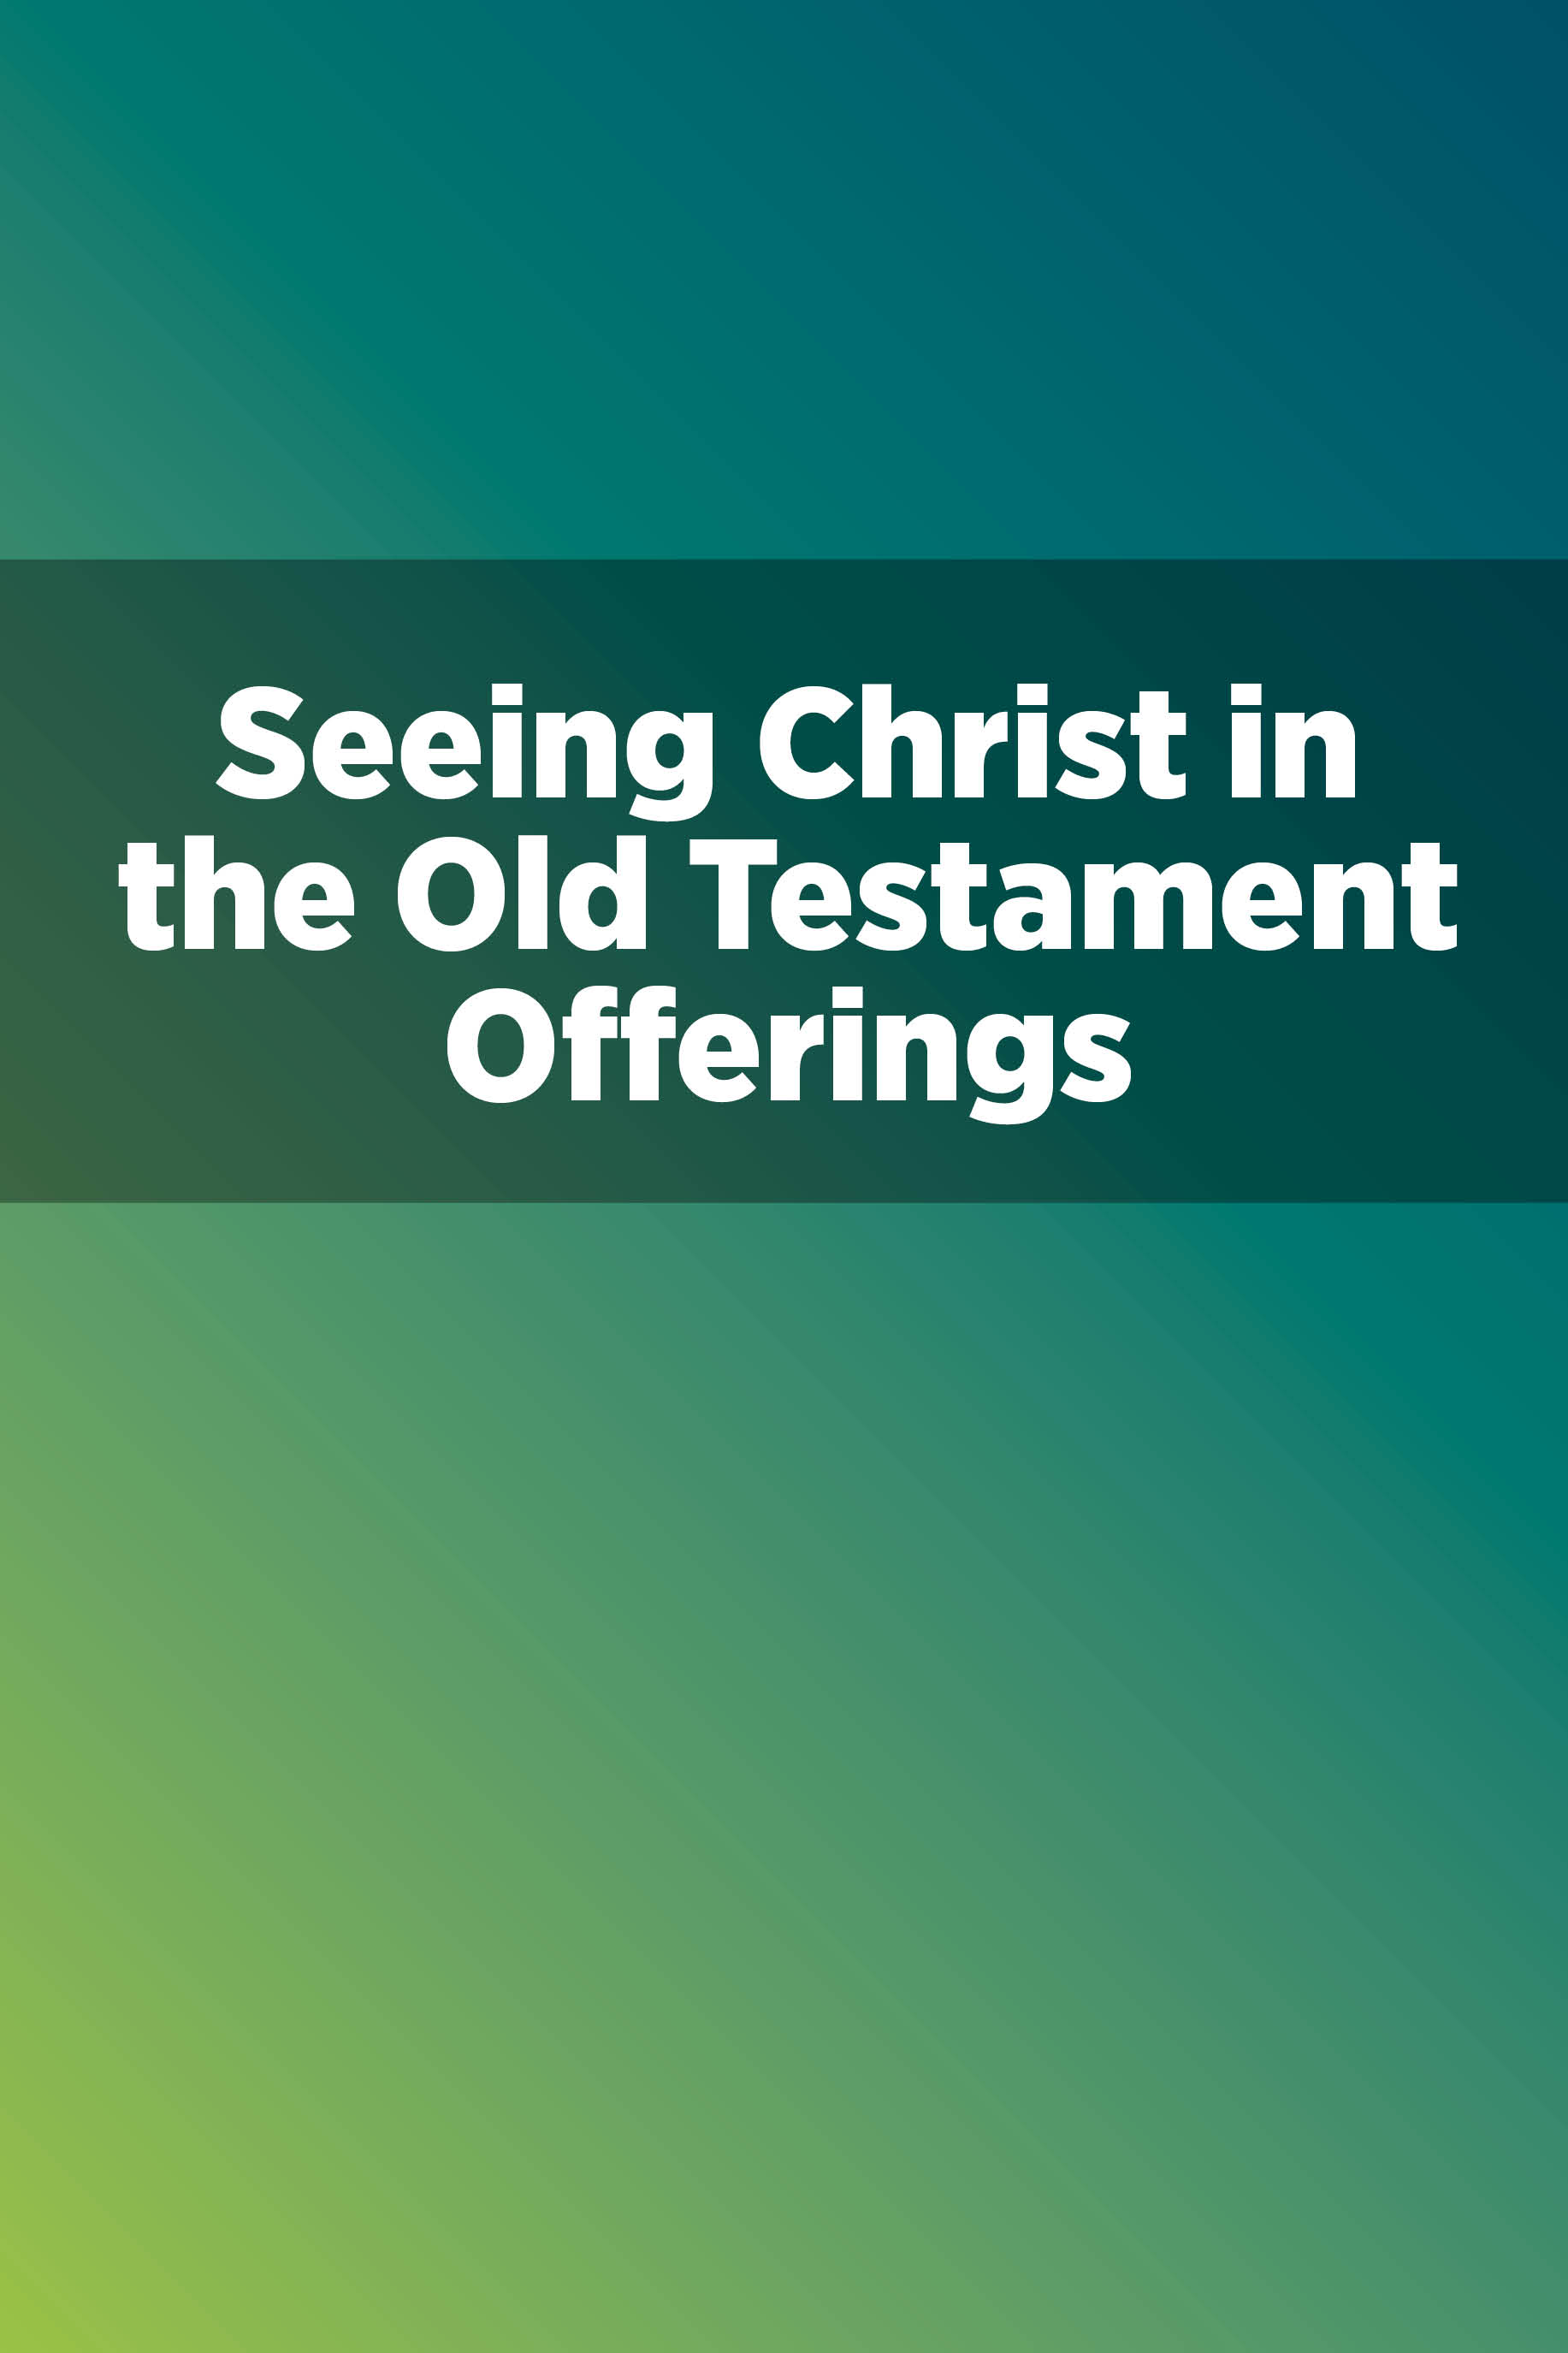 Seeing Christ in the Old Testament Offerings